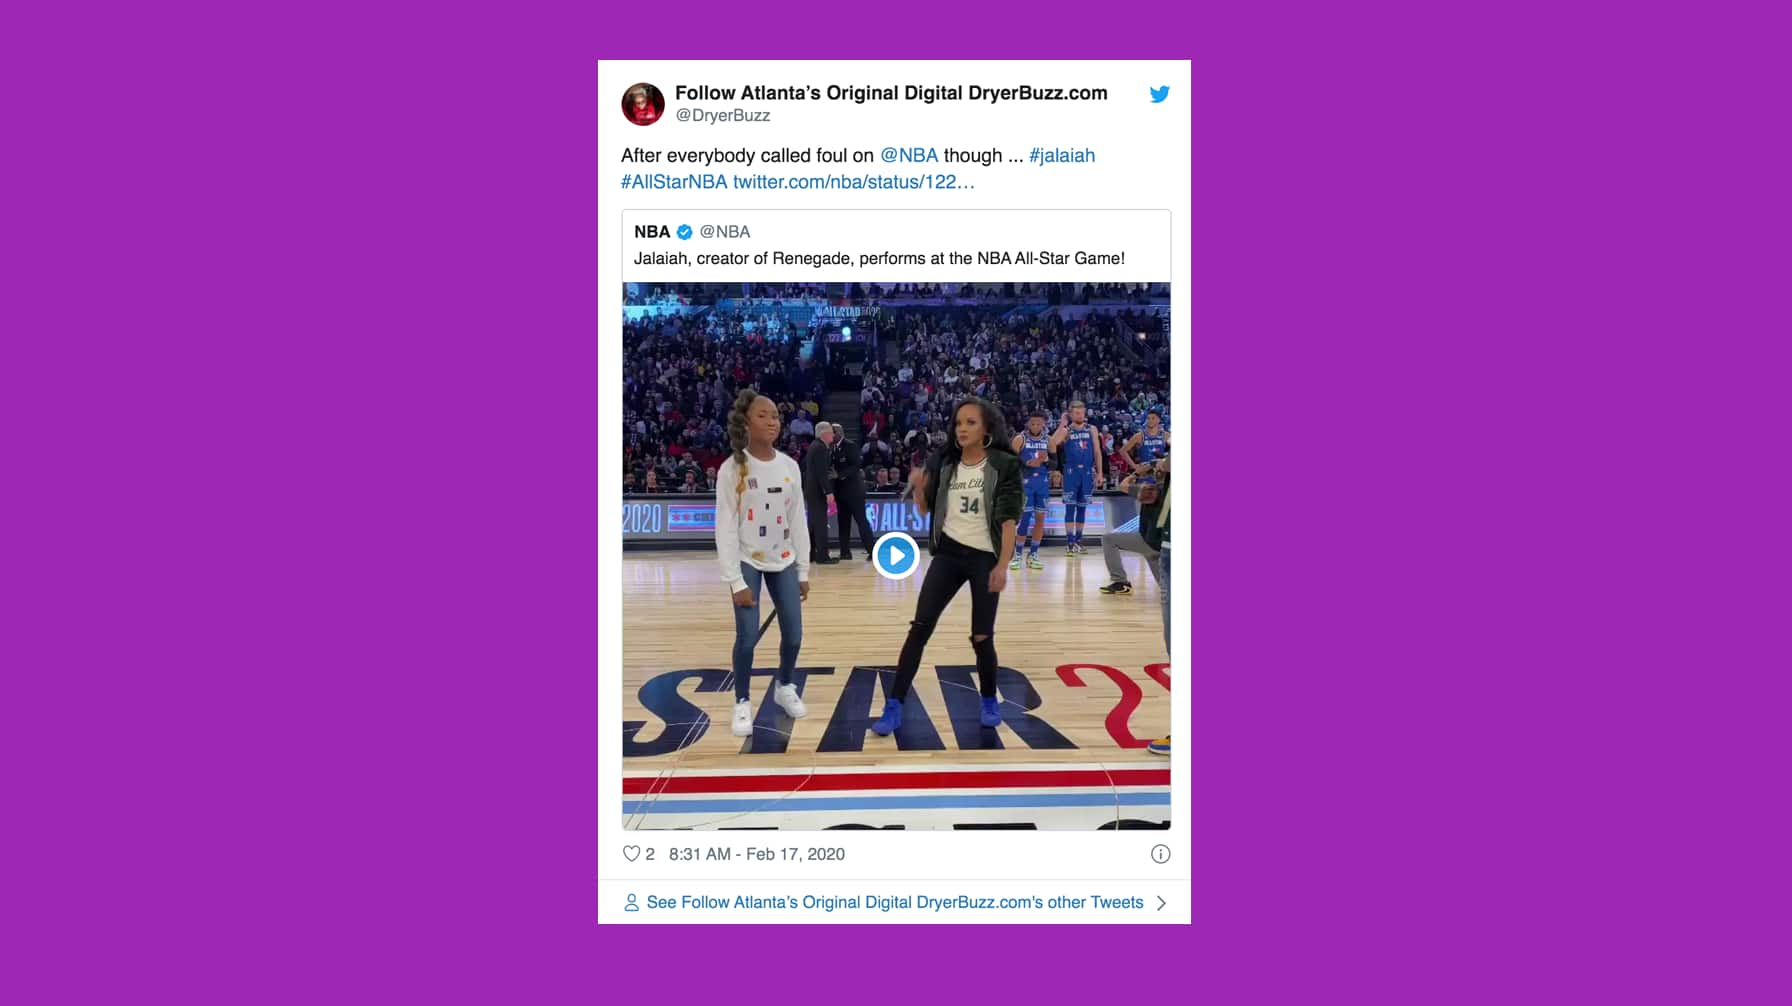 Tweet embeds video of Jalaiah dancing at All-star game, and comments with